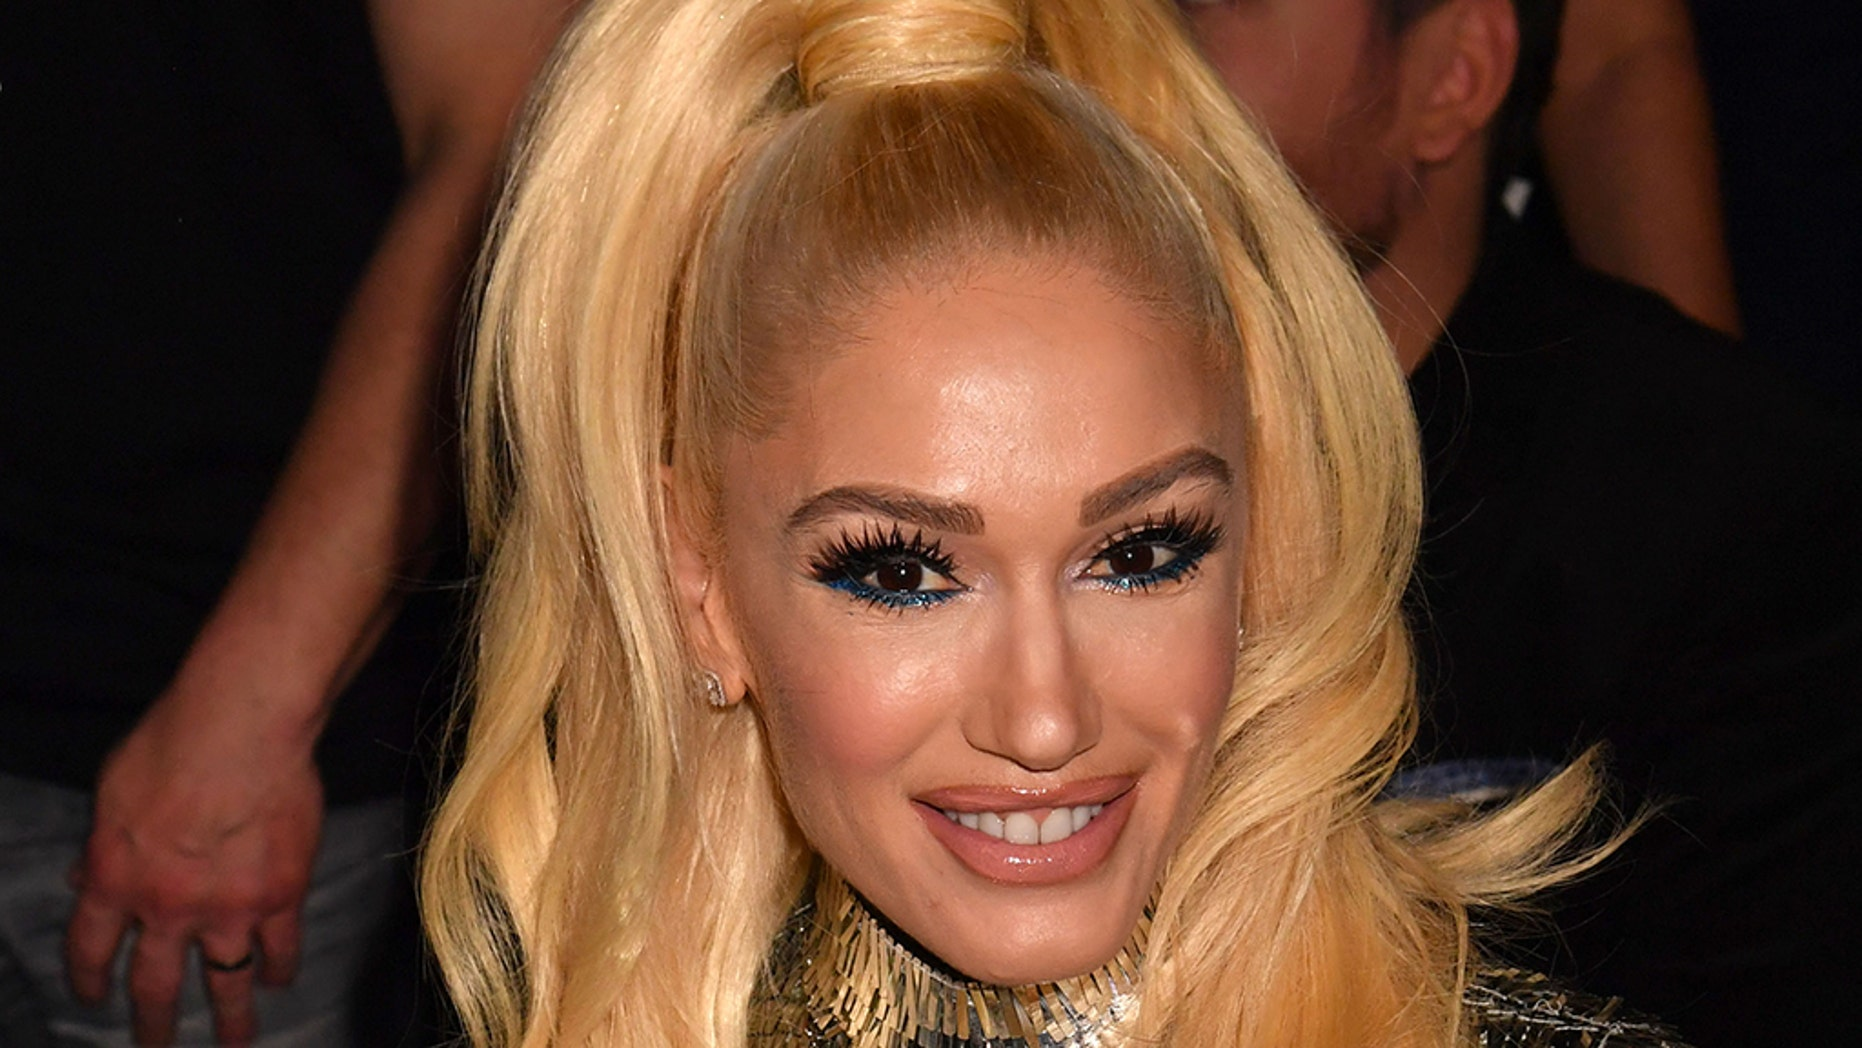 Gwen Stefani during the 54th Academy Of Country Music Awards at MGM Grand Garden Arena on April 07, 2019 in Las Vegas, Nevada.